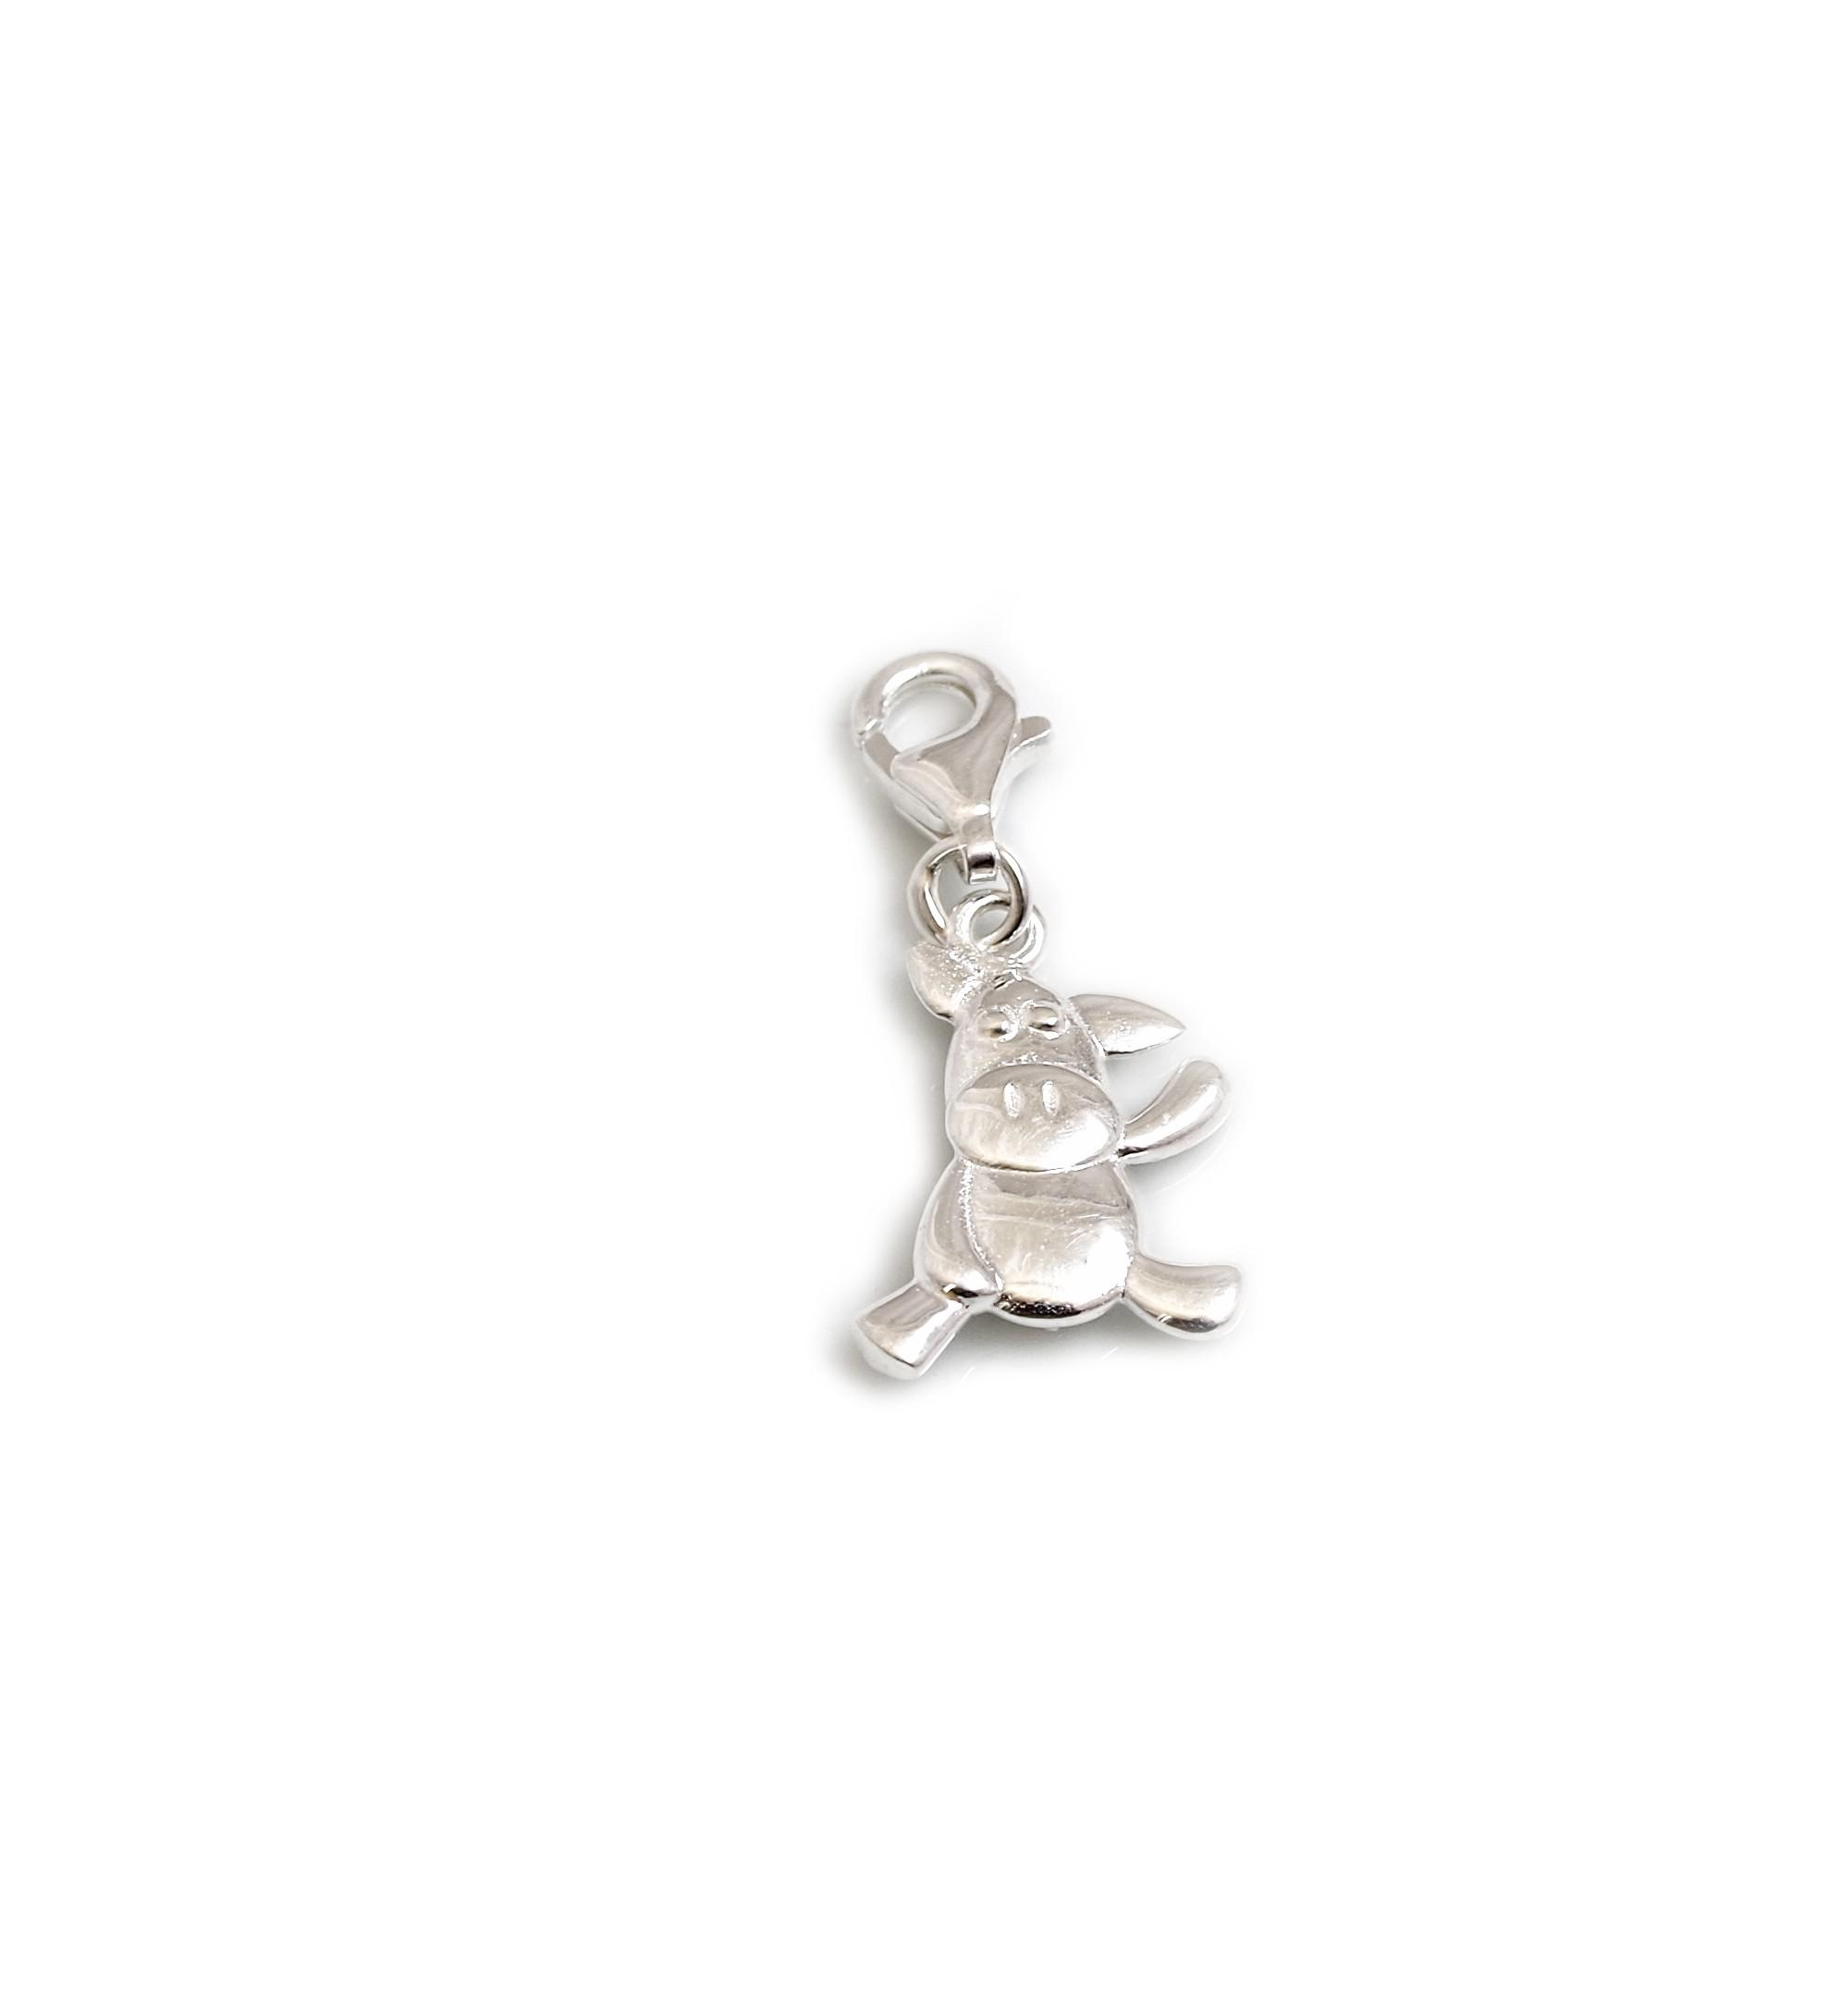 sterling charms hand jewellery stamped silver initial with clasps small charm